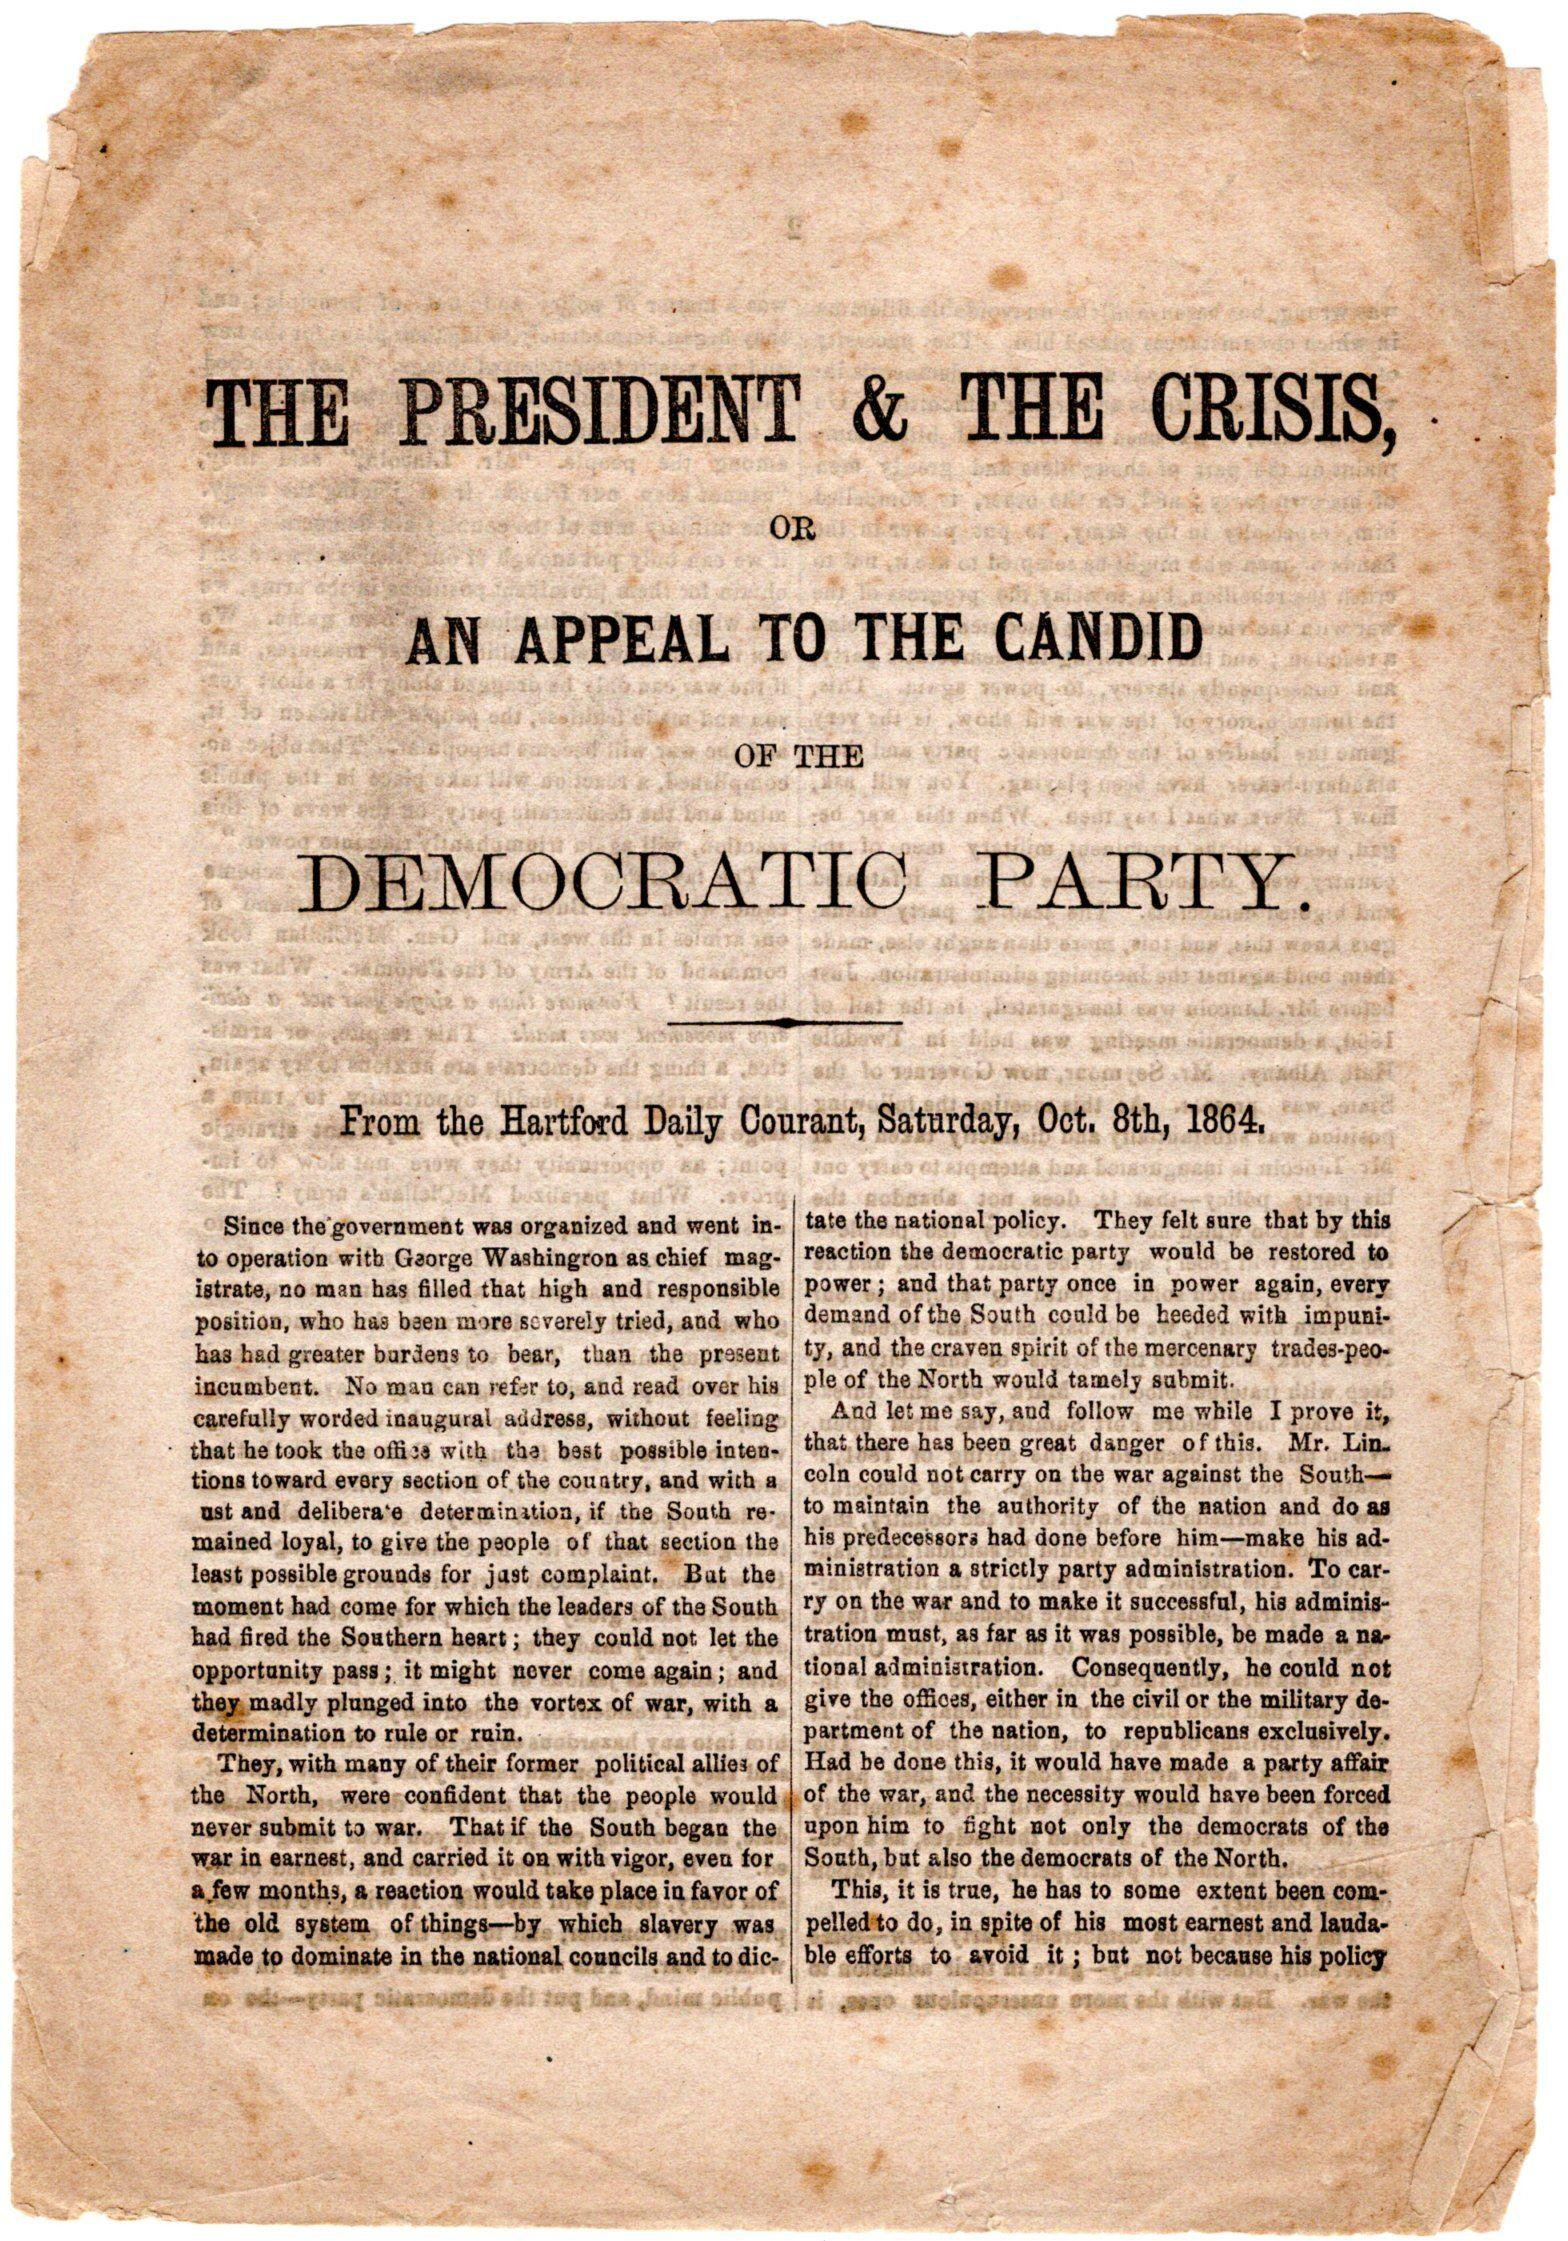 Campaign Document Contrasts Lincoln's Prudence with McClellan's Scheming to Prolong War